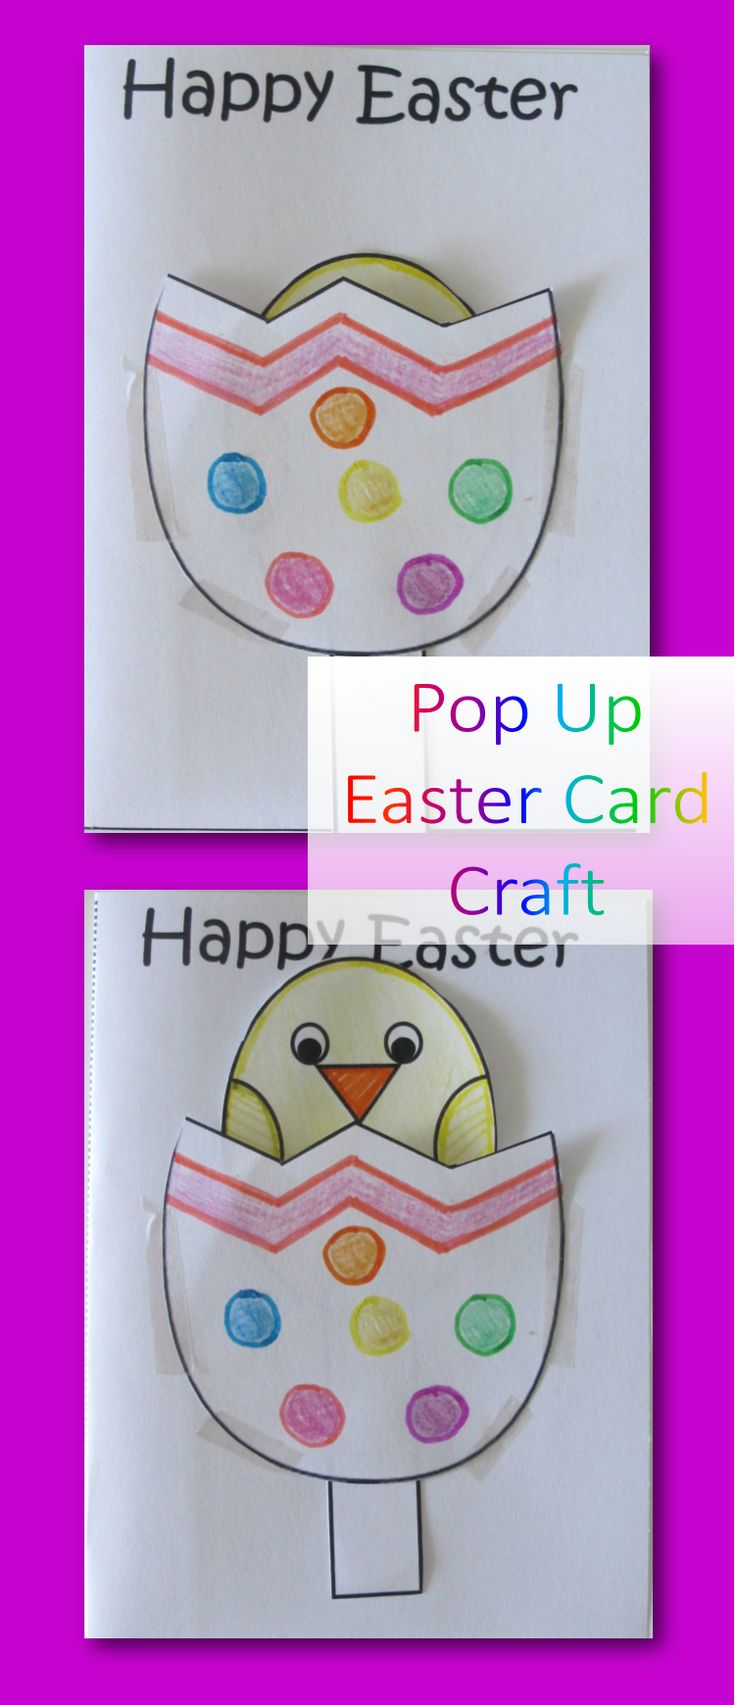 Pop Up Easter Cards Are So Cute And Really Easy To Make With Teachezy Templates Www Teachezy Com Www Easter Cards Diy Pop Up Cards Easter Activities For Kids